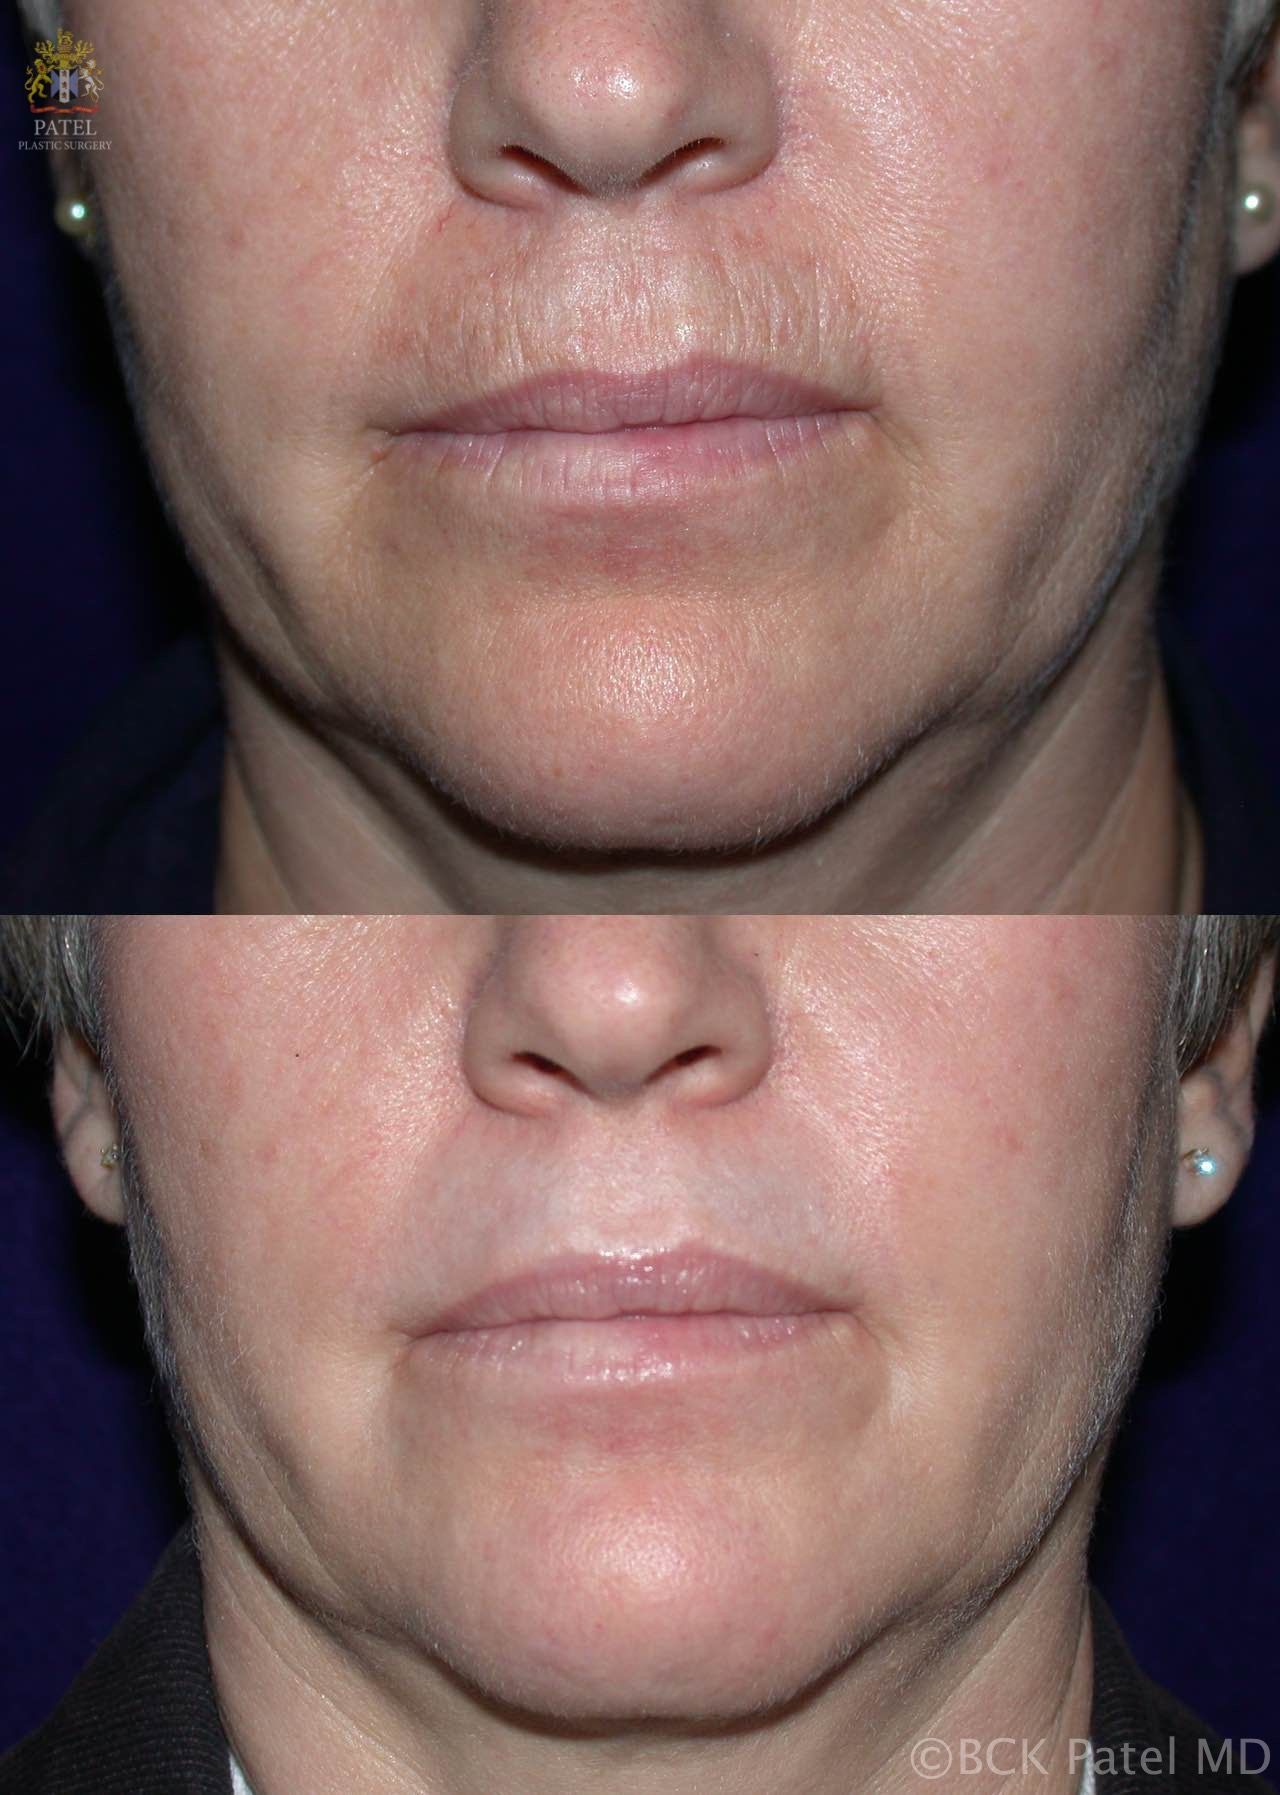 Nice improvement in the smoker's lines around the mouth, marionette lines after CO2 laser by Dr. BCK Patel MD, FRCS, Salt Lake City, London, St George